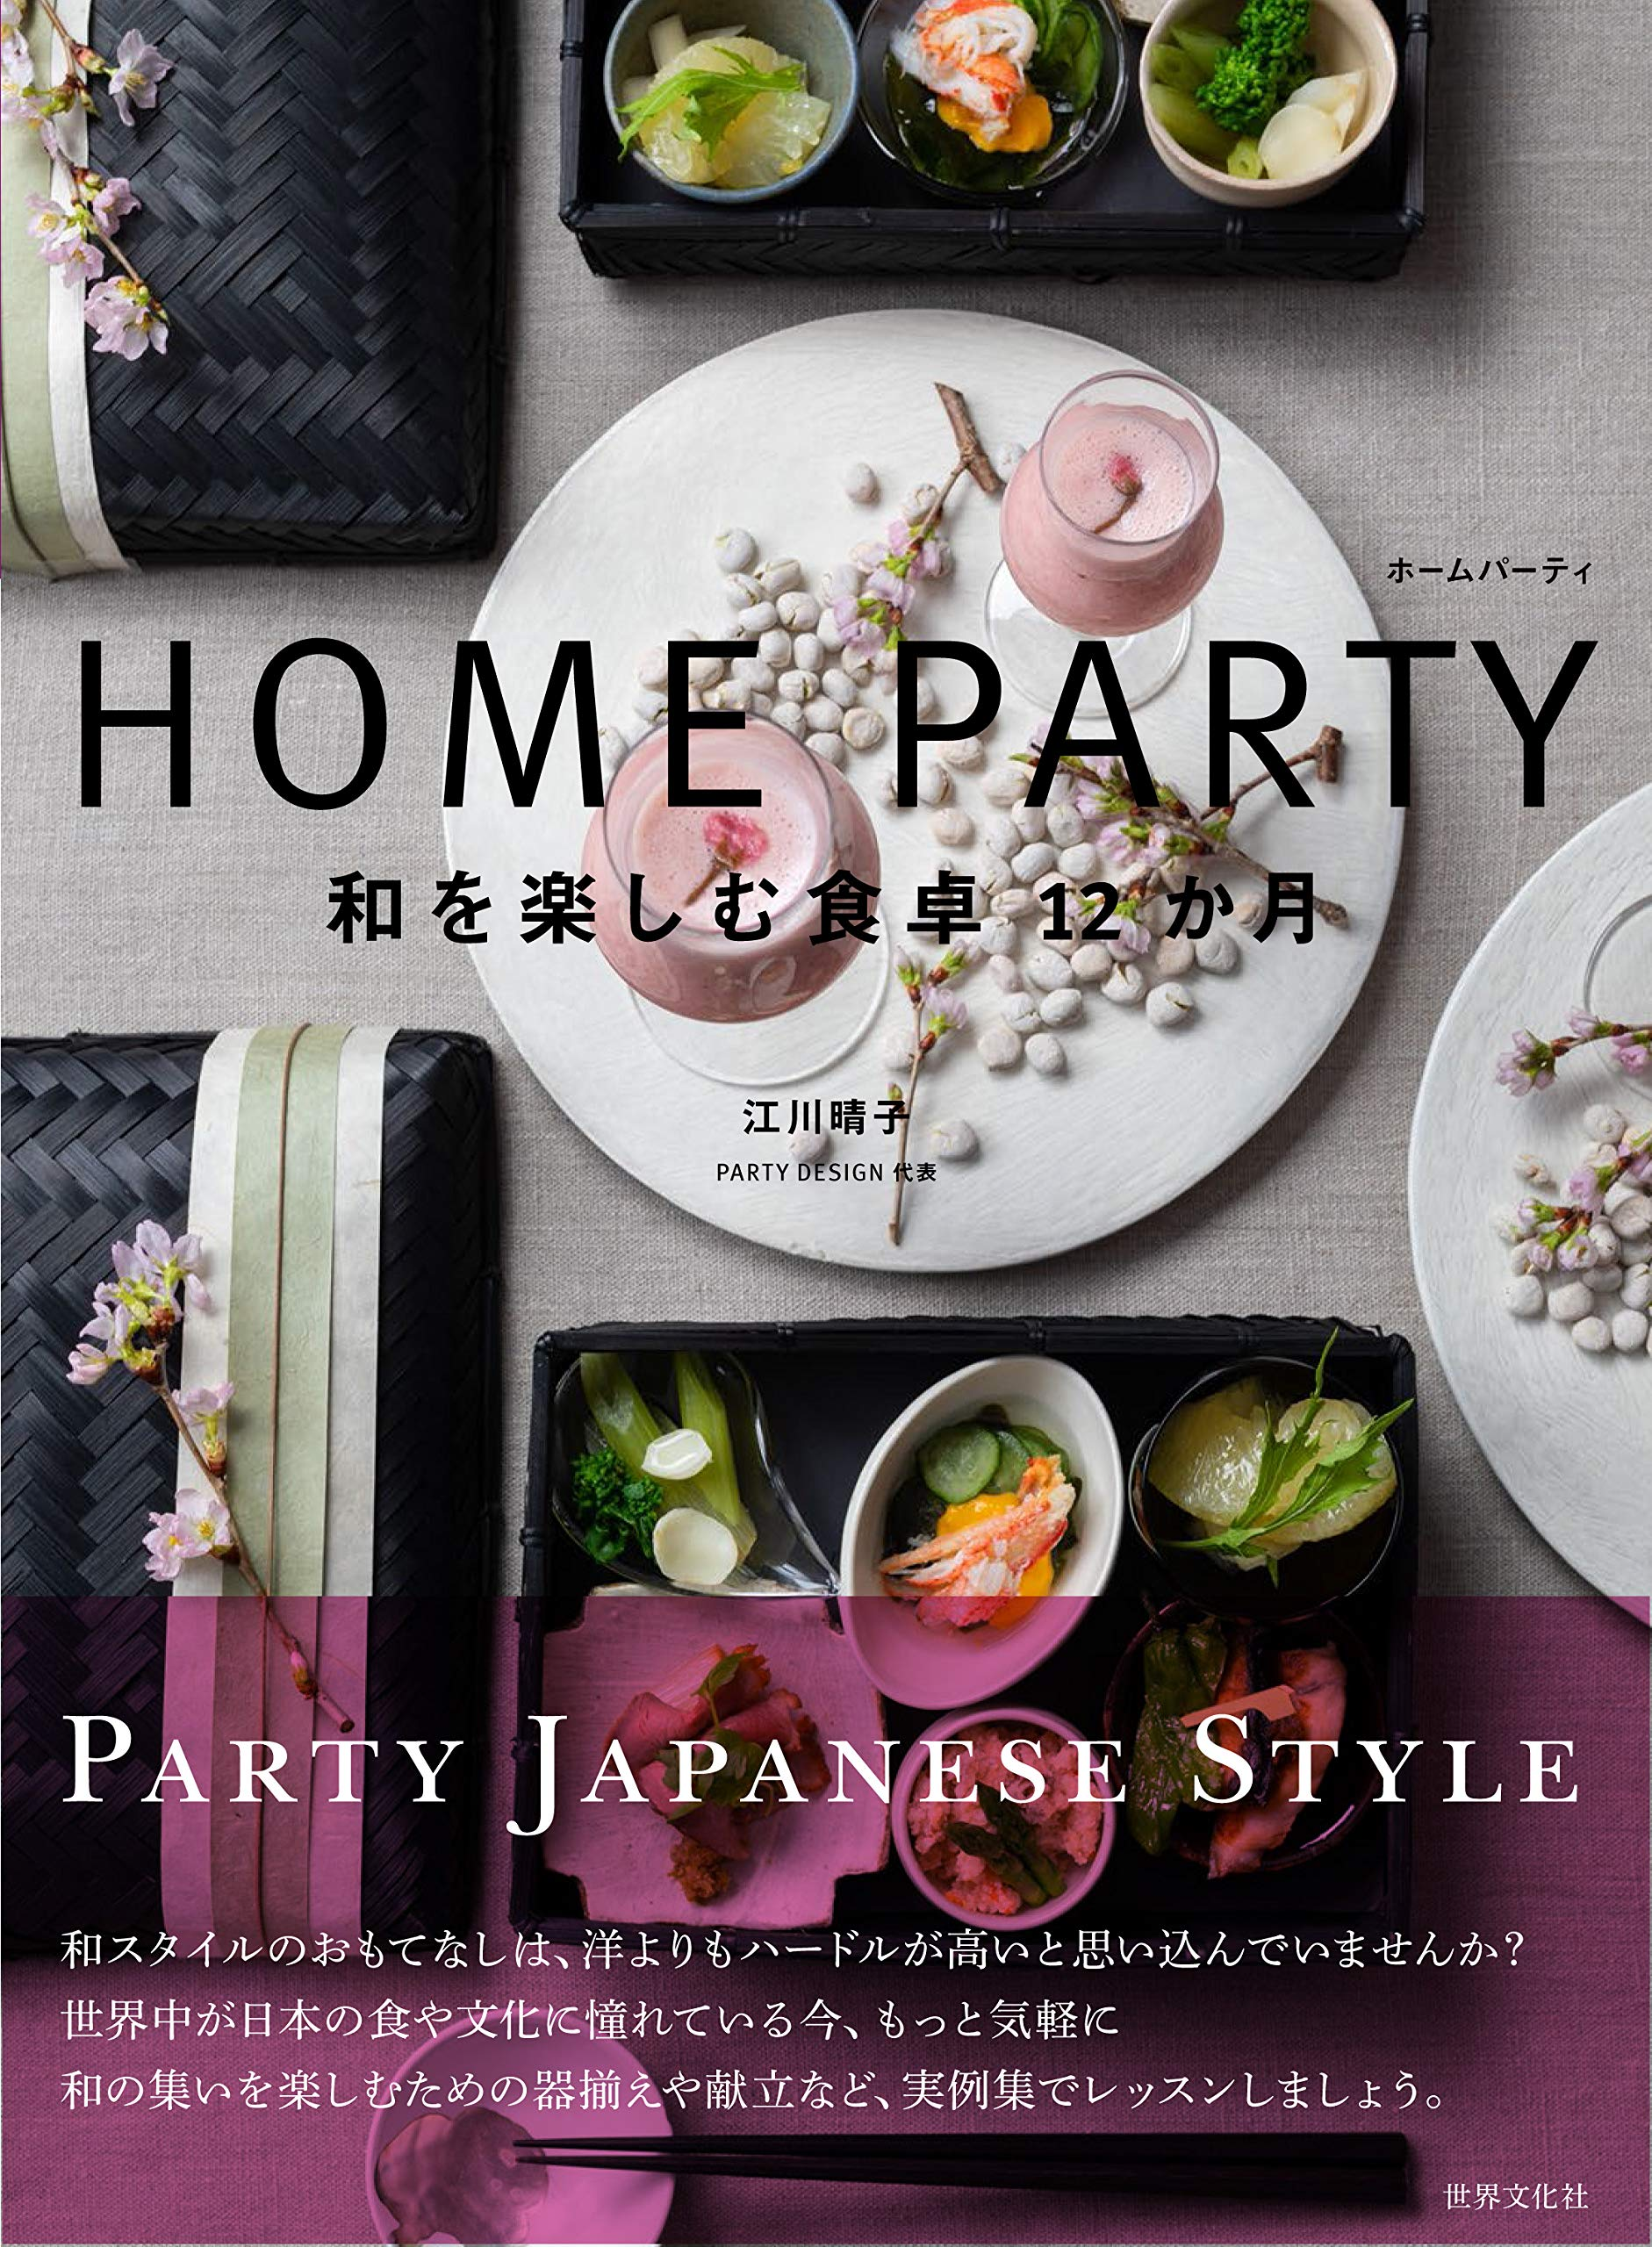 HOME PARTY ホームパーティ ― 和を楽しむ食卓 12か月 「PARTY JAPANESE STYLE」 著者 江川晴子 発行 株式会社世界文化社